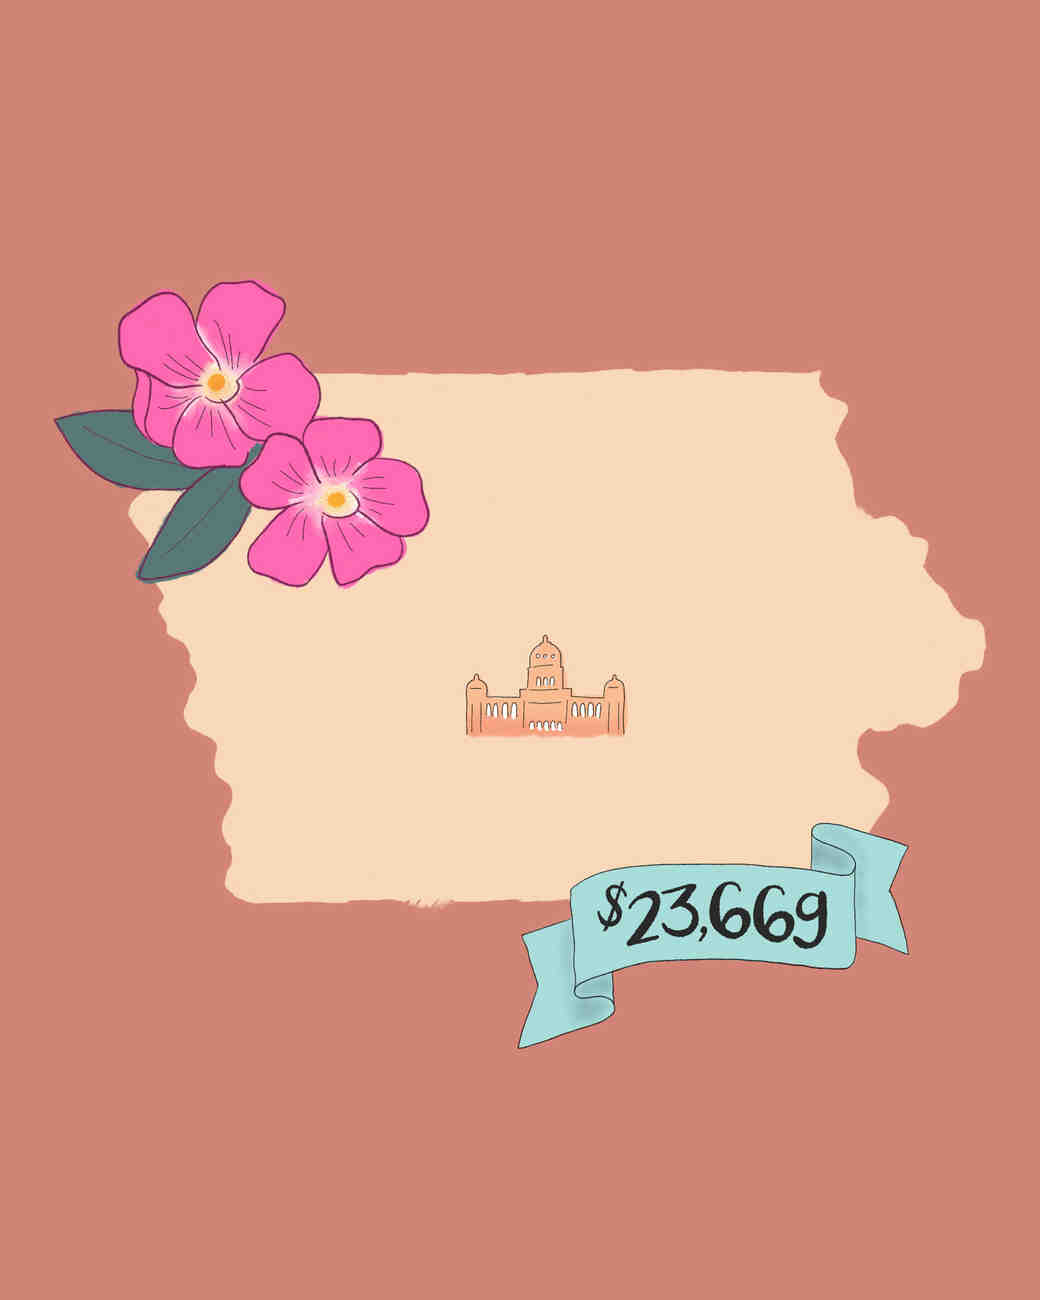 state wedding costs illustration iowa